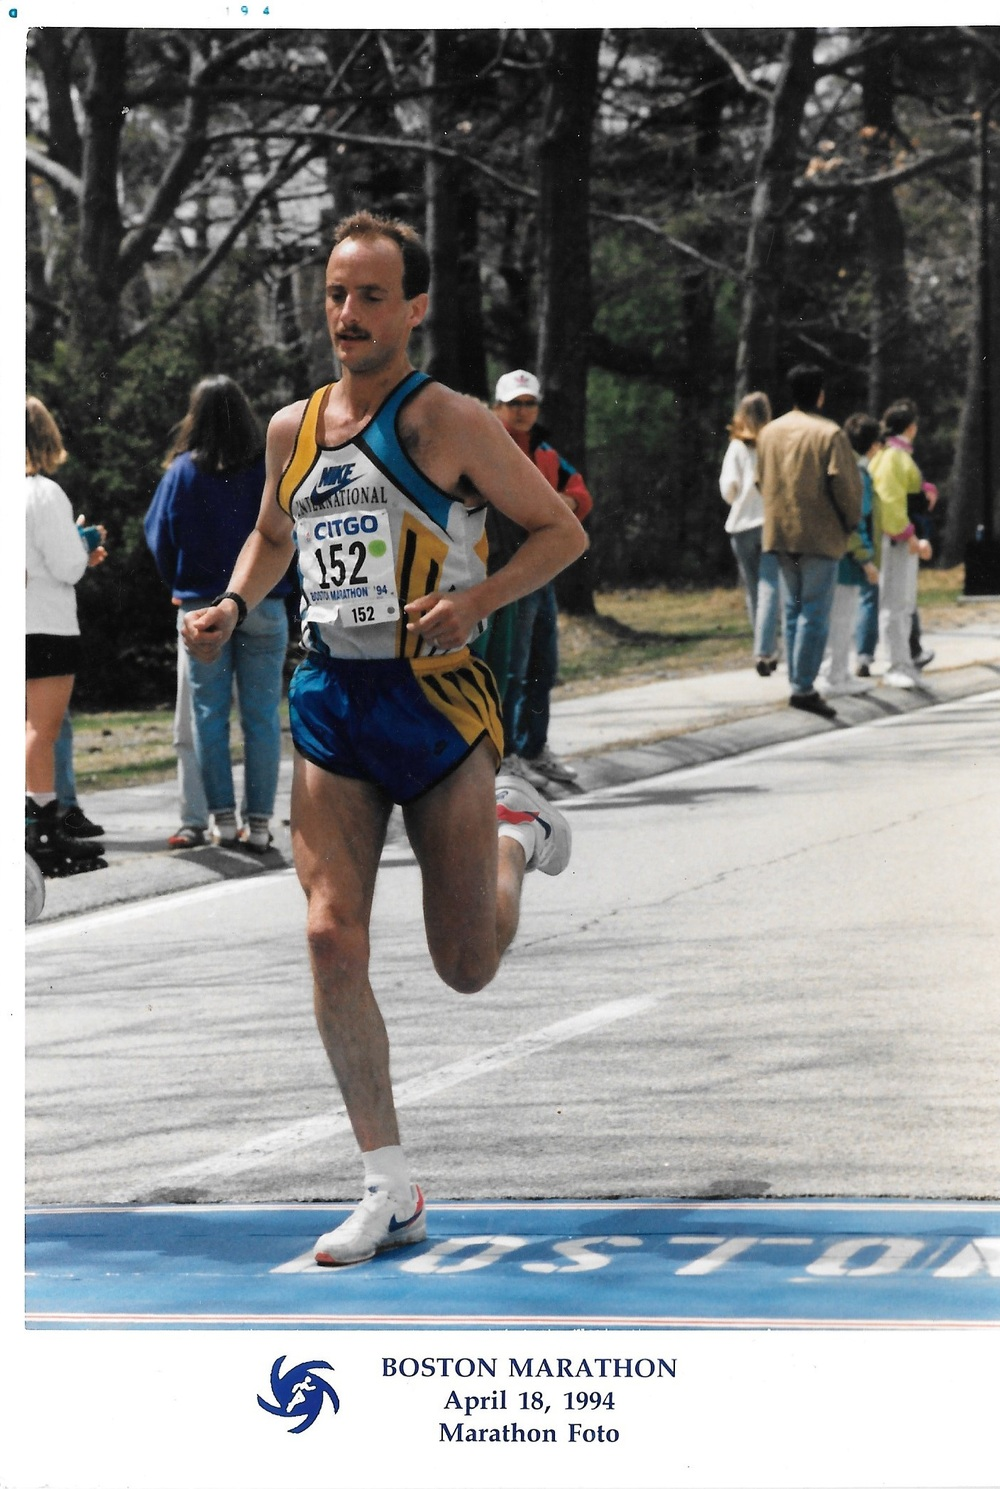 Dave Boston Marathon 1994.jpeg